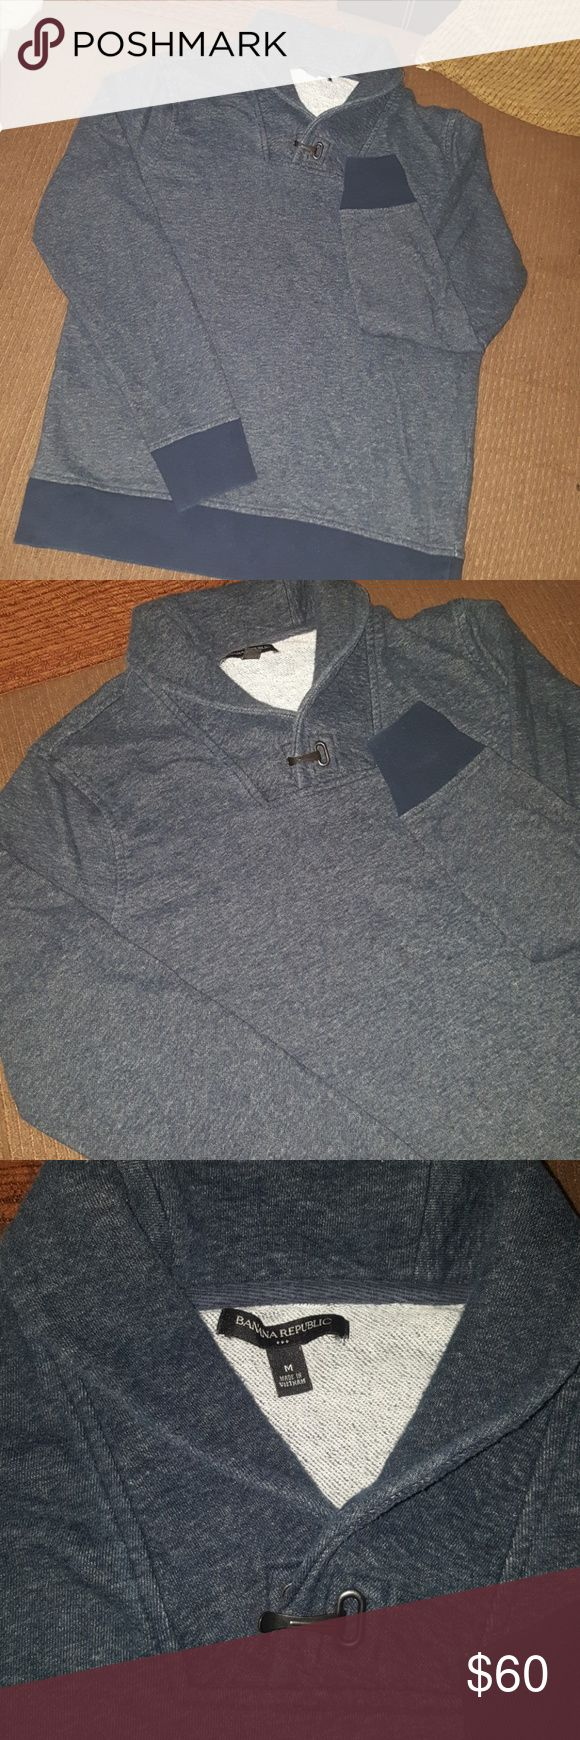 BANANA Republic sweater  with  chinese collar BANANA Republic  sweater with  chinese collar & nice buckle Size MEDIUM  Blue No rips No stains  No fade No holes  Odor free 100%  Cotton Rarely used  Make me an offer Banana Republic Sweaters